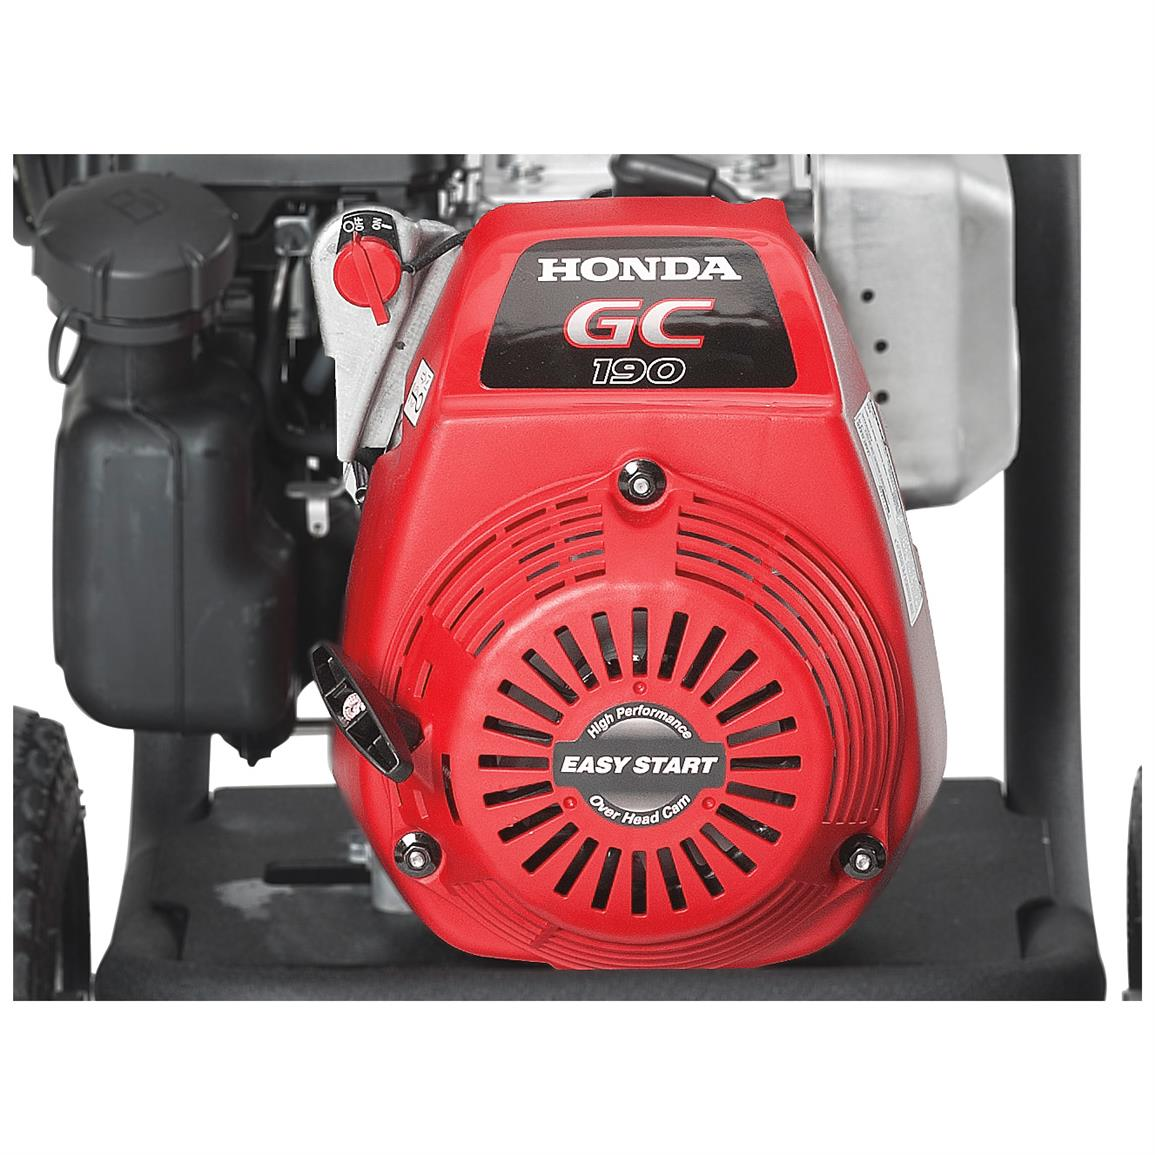 Reliable Honda GC190 engine